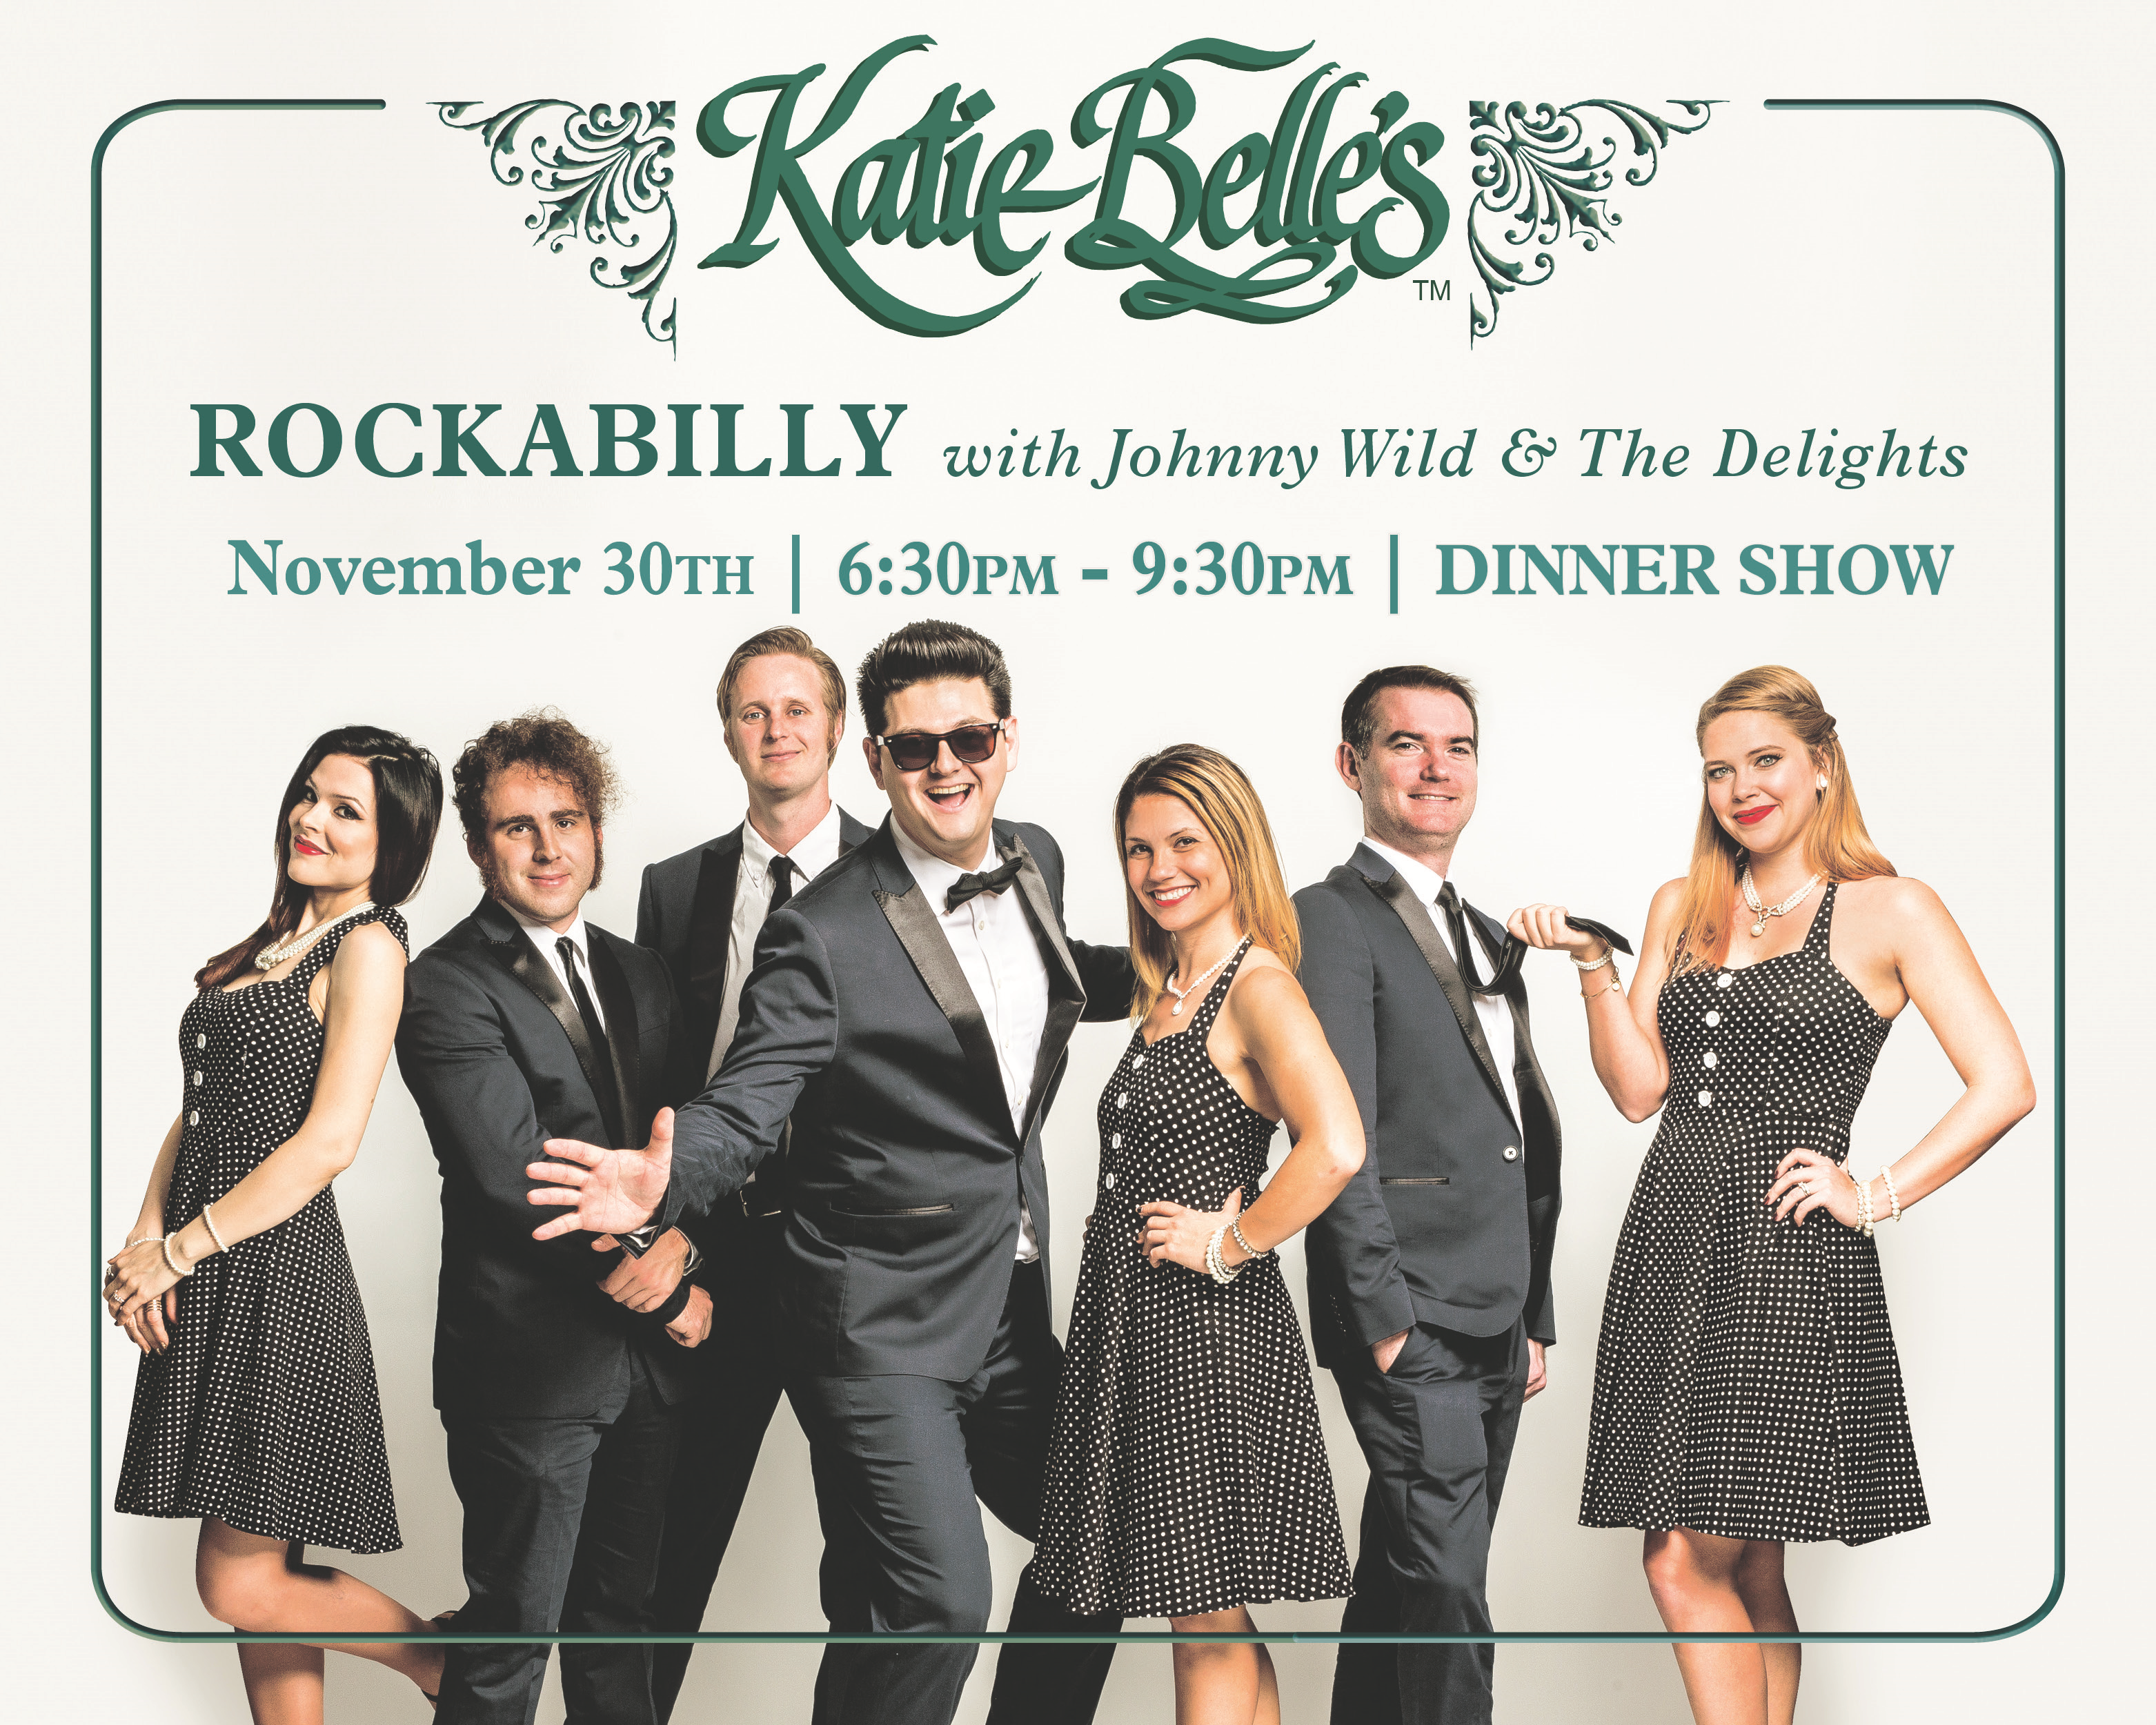 johnny wild & the delights - rockabilly show Image